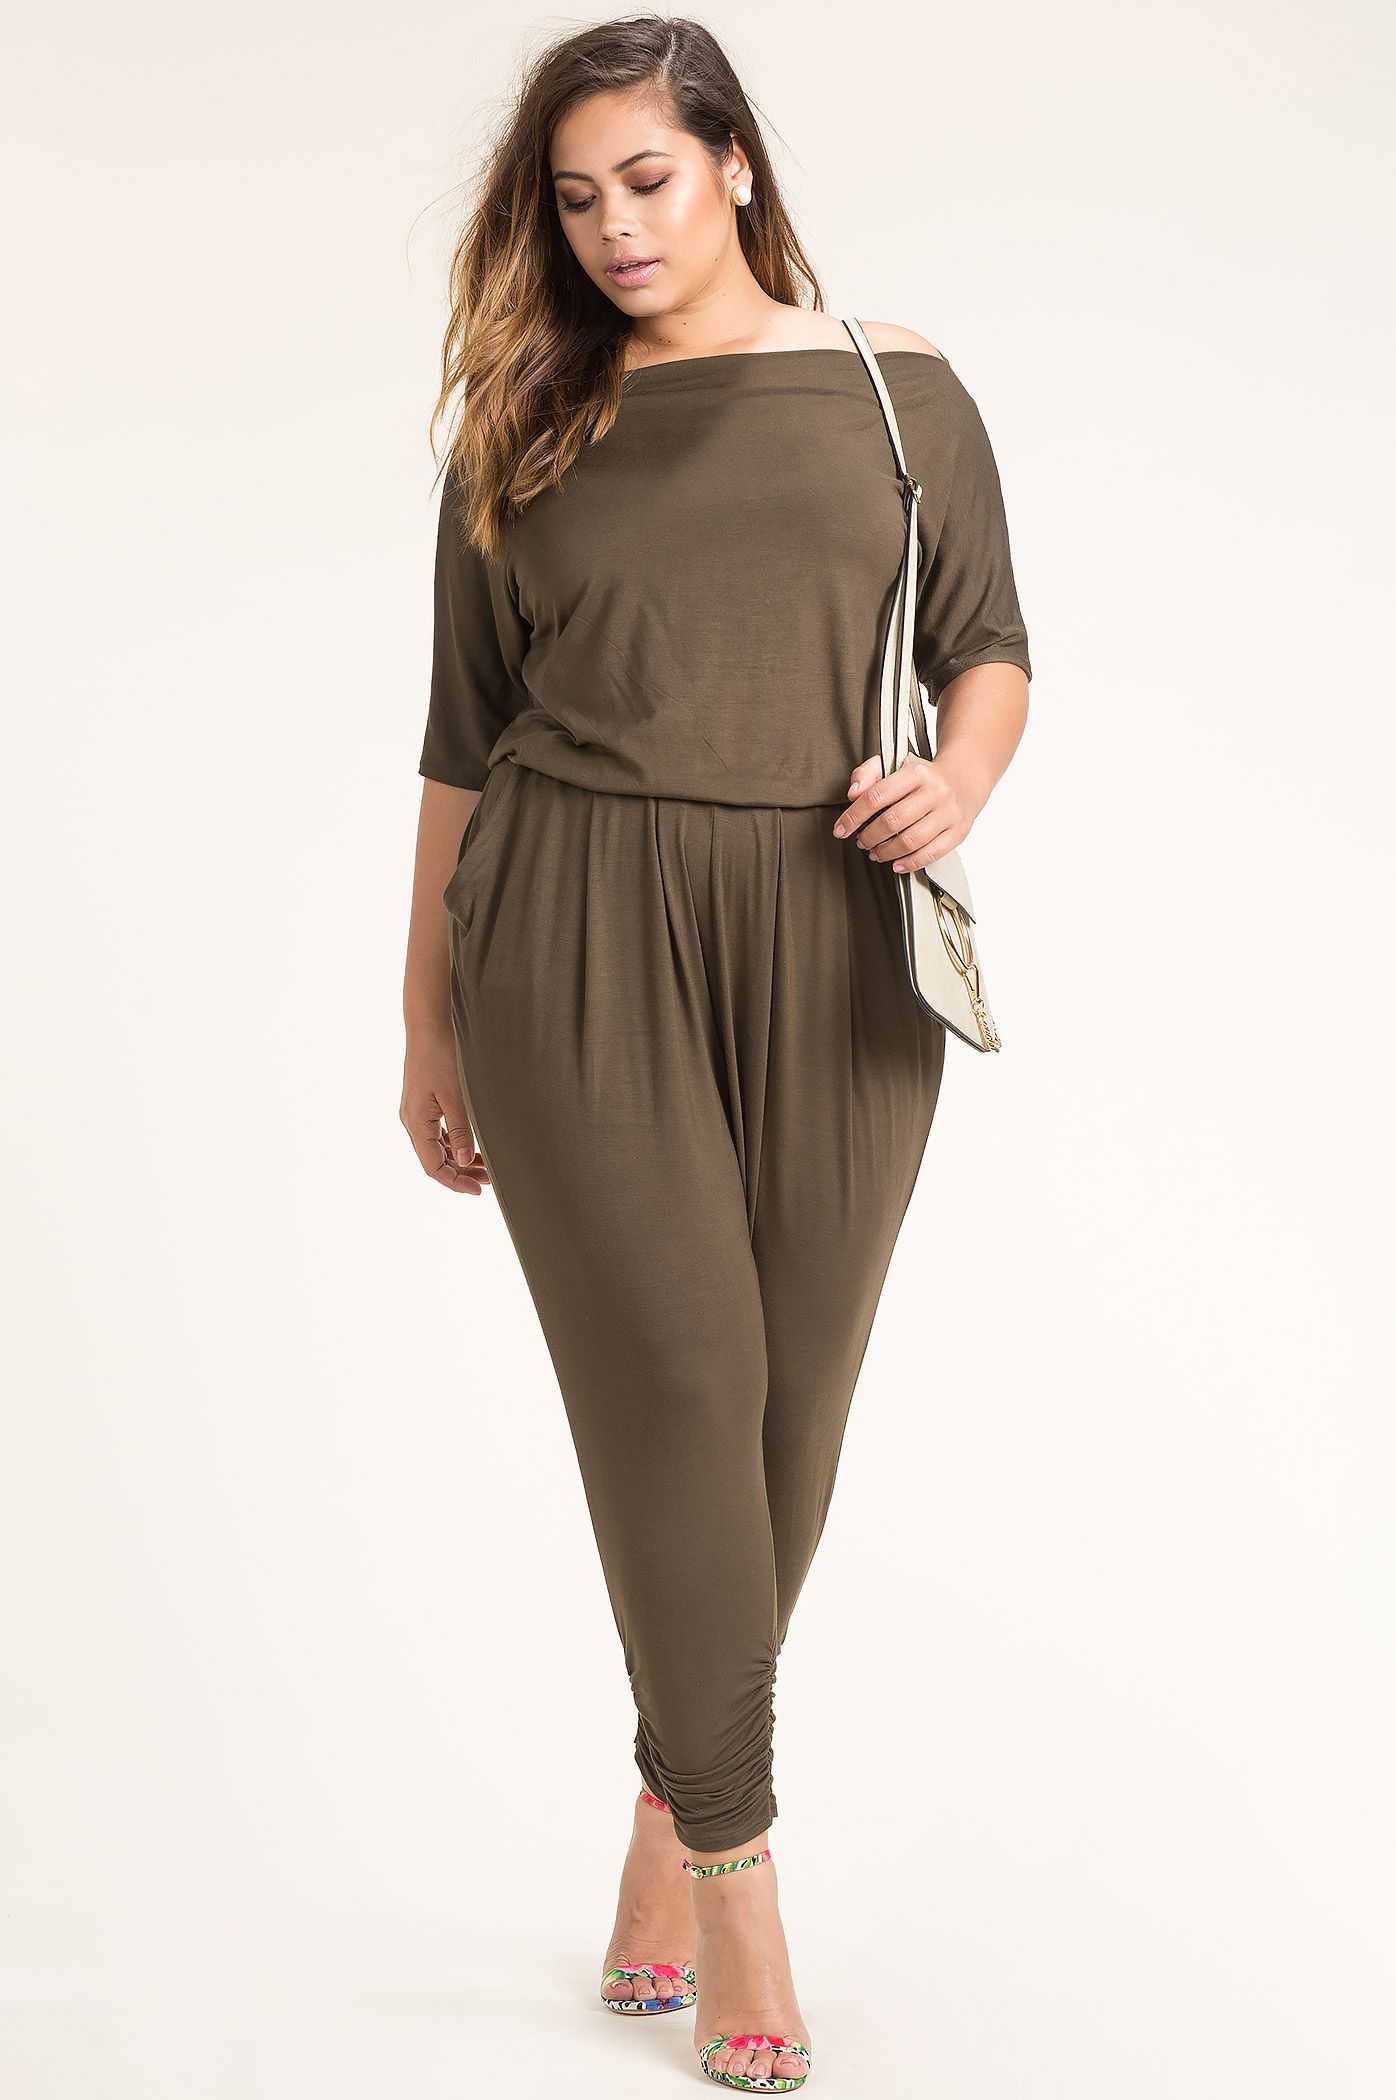 8e70f5e661de9 Women s Plus Size Jumpsuits